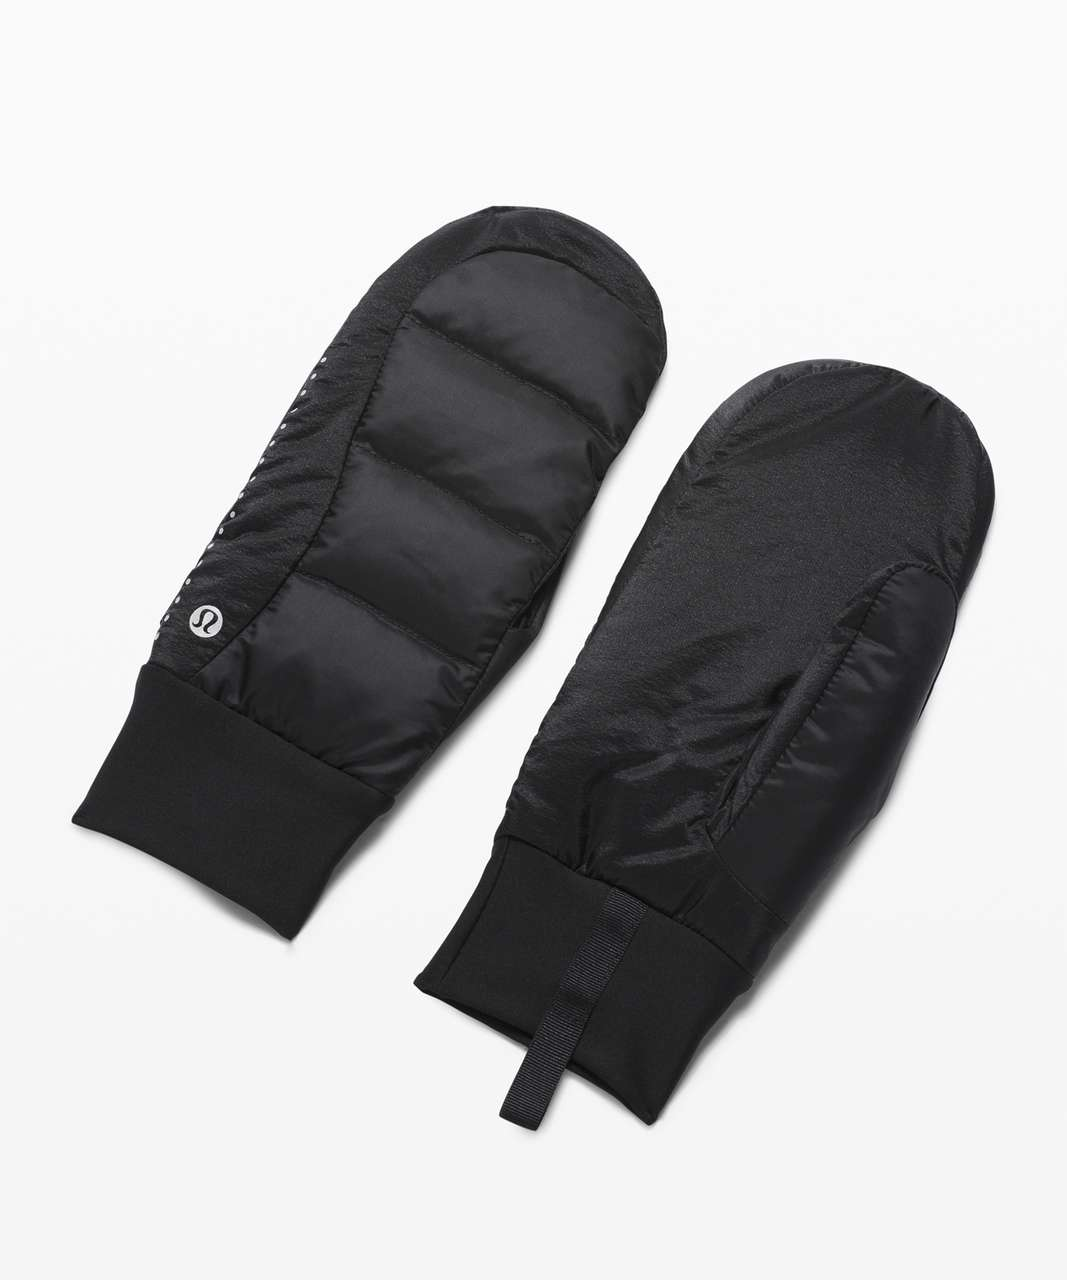 Lululemon Down for It All Mitten - Black